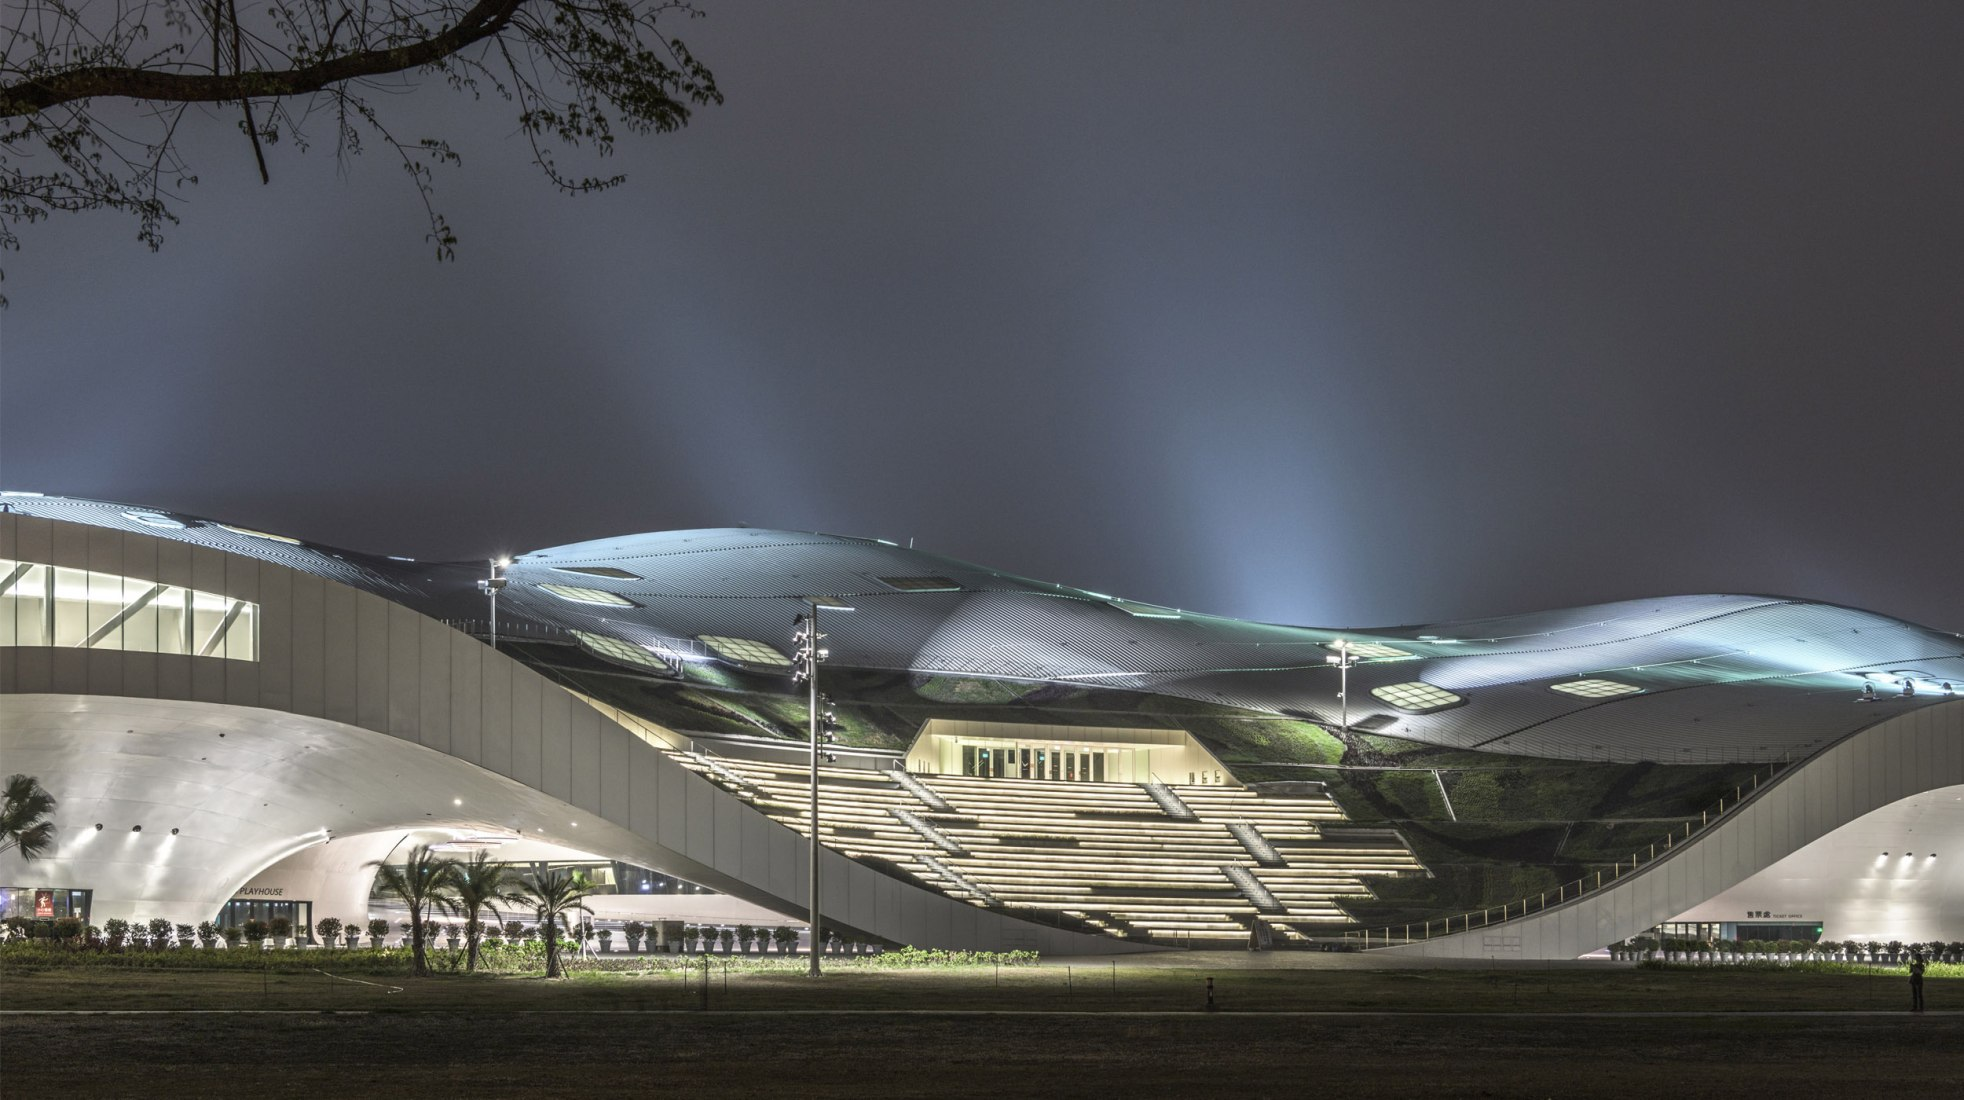 National Kaohsiung Center for the Arts by Mecanoo. Photograph by Ethan Lee